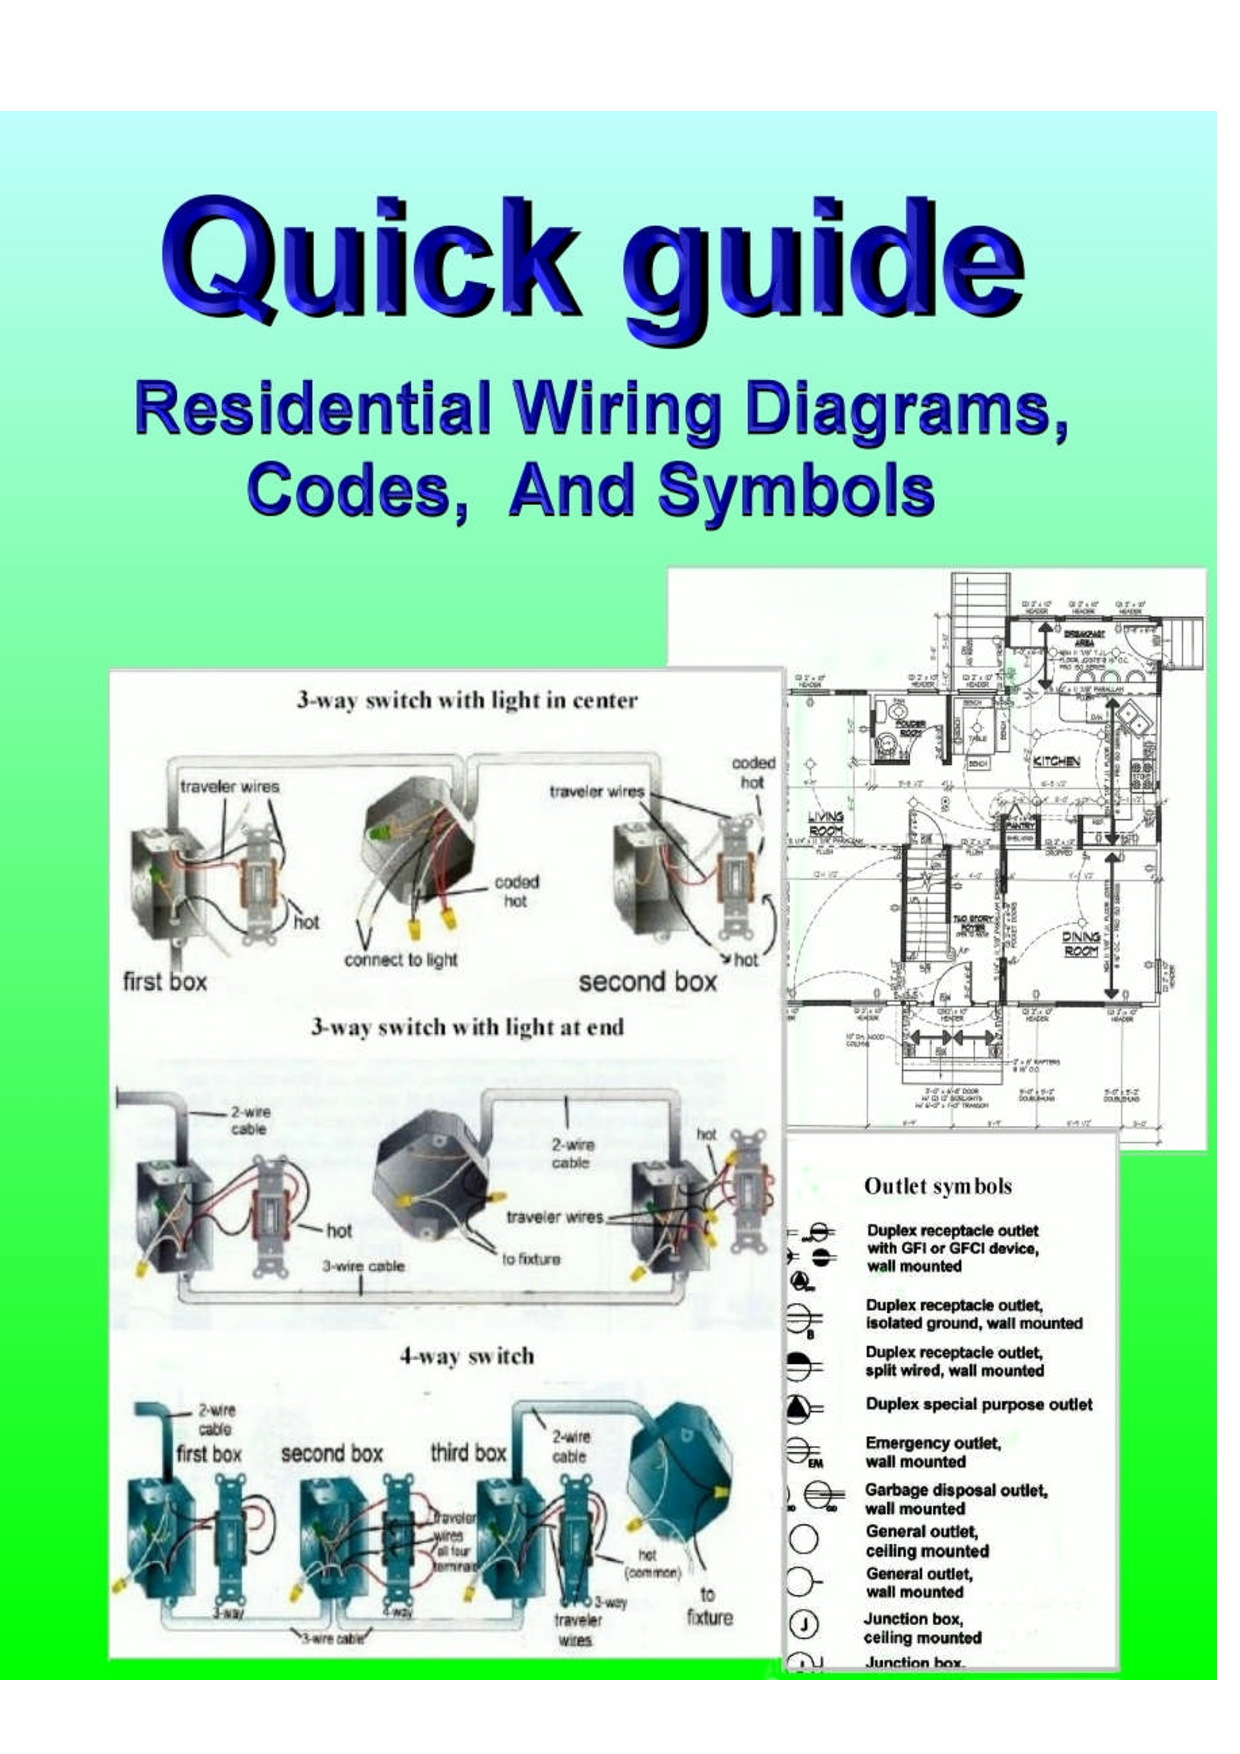 House Electrical Wiring Diagram Canada